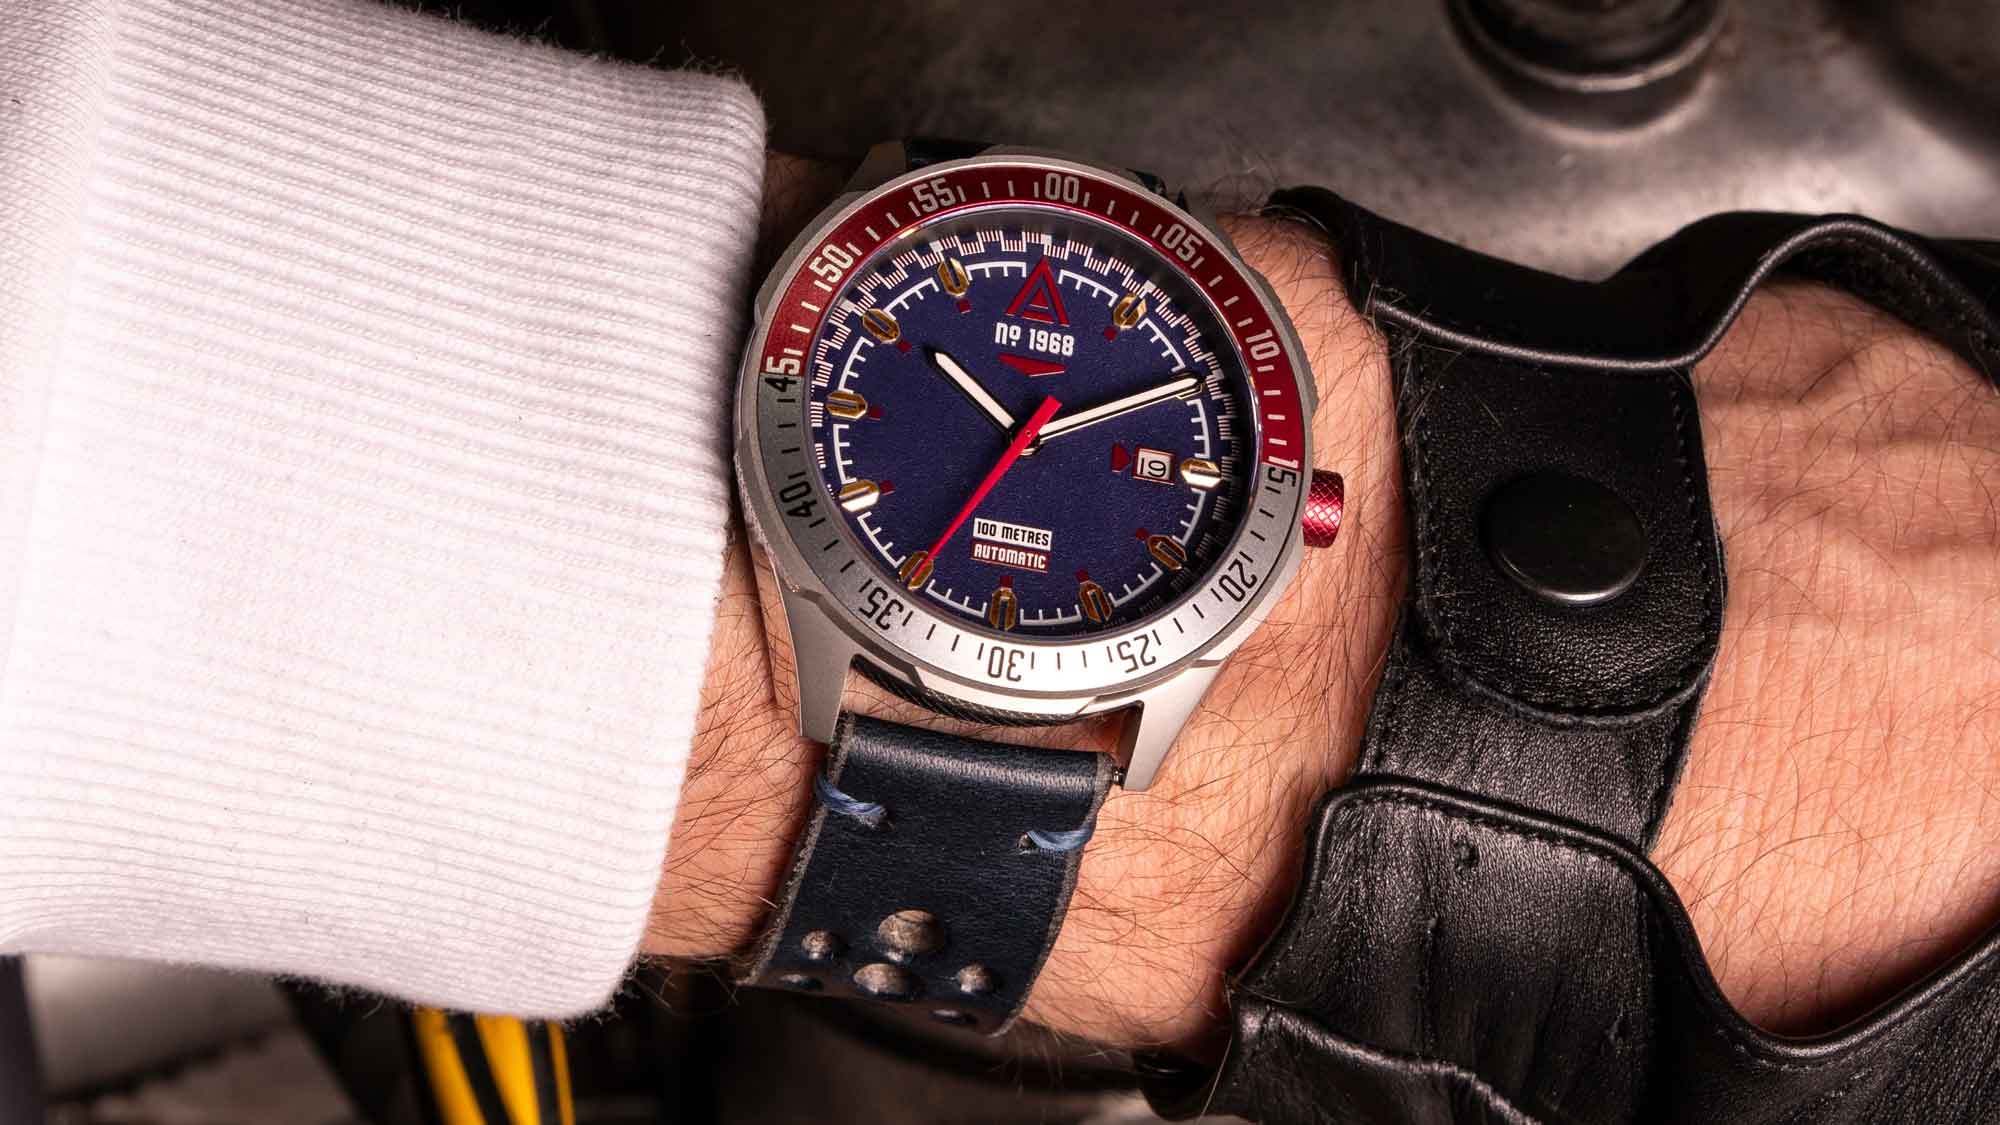 racing watches wt author blue no 1968 wrist shot